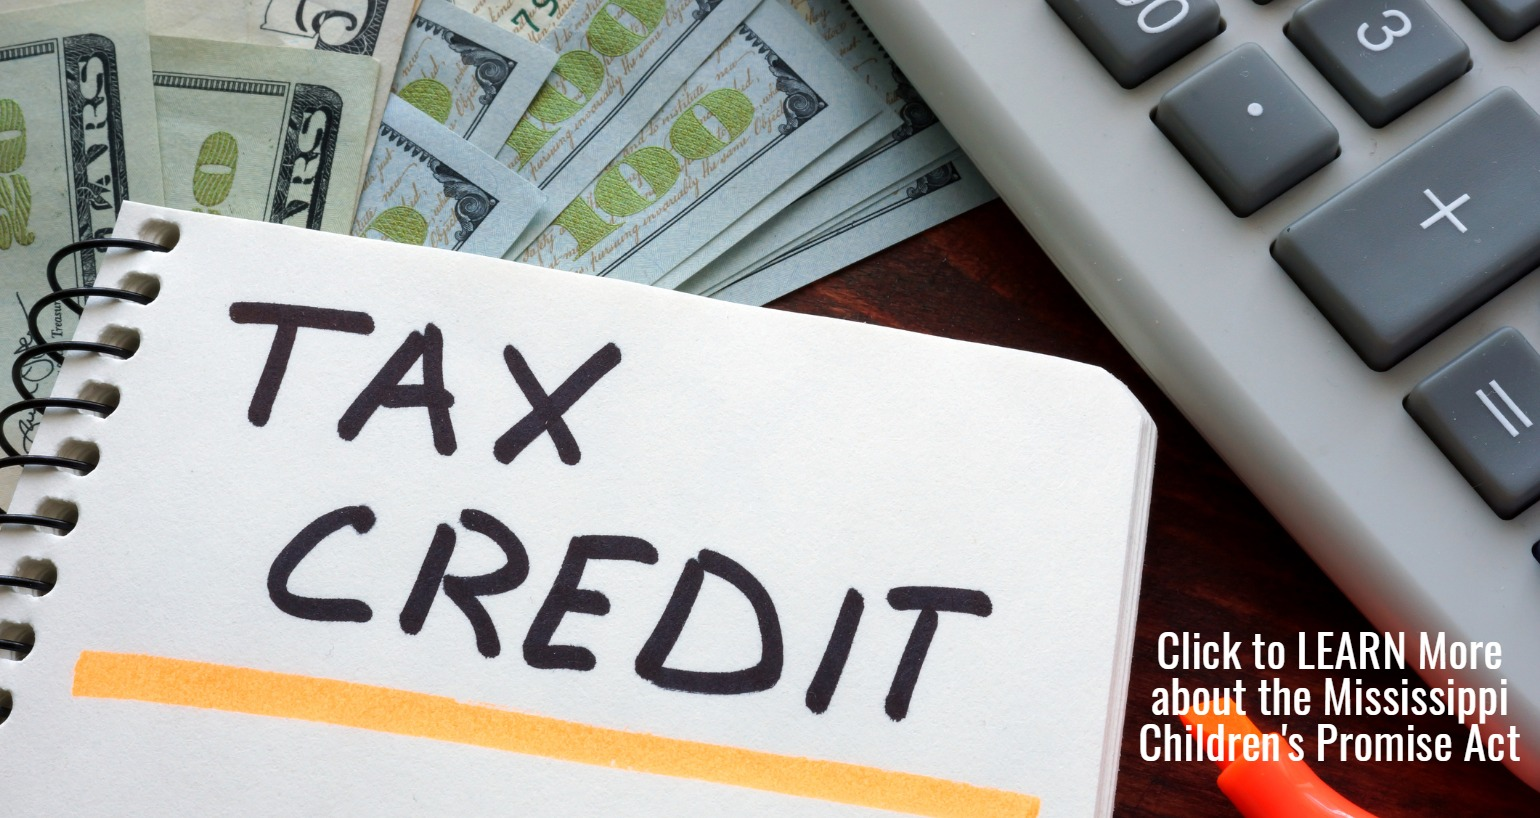 Children's Promise Act Tax Credit